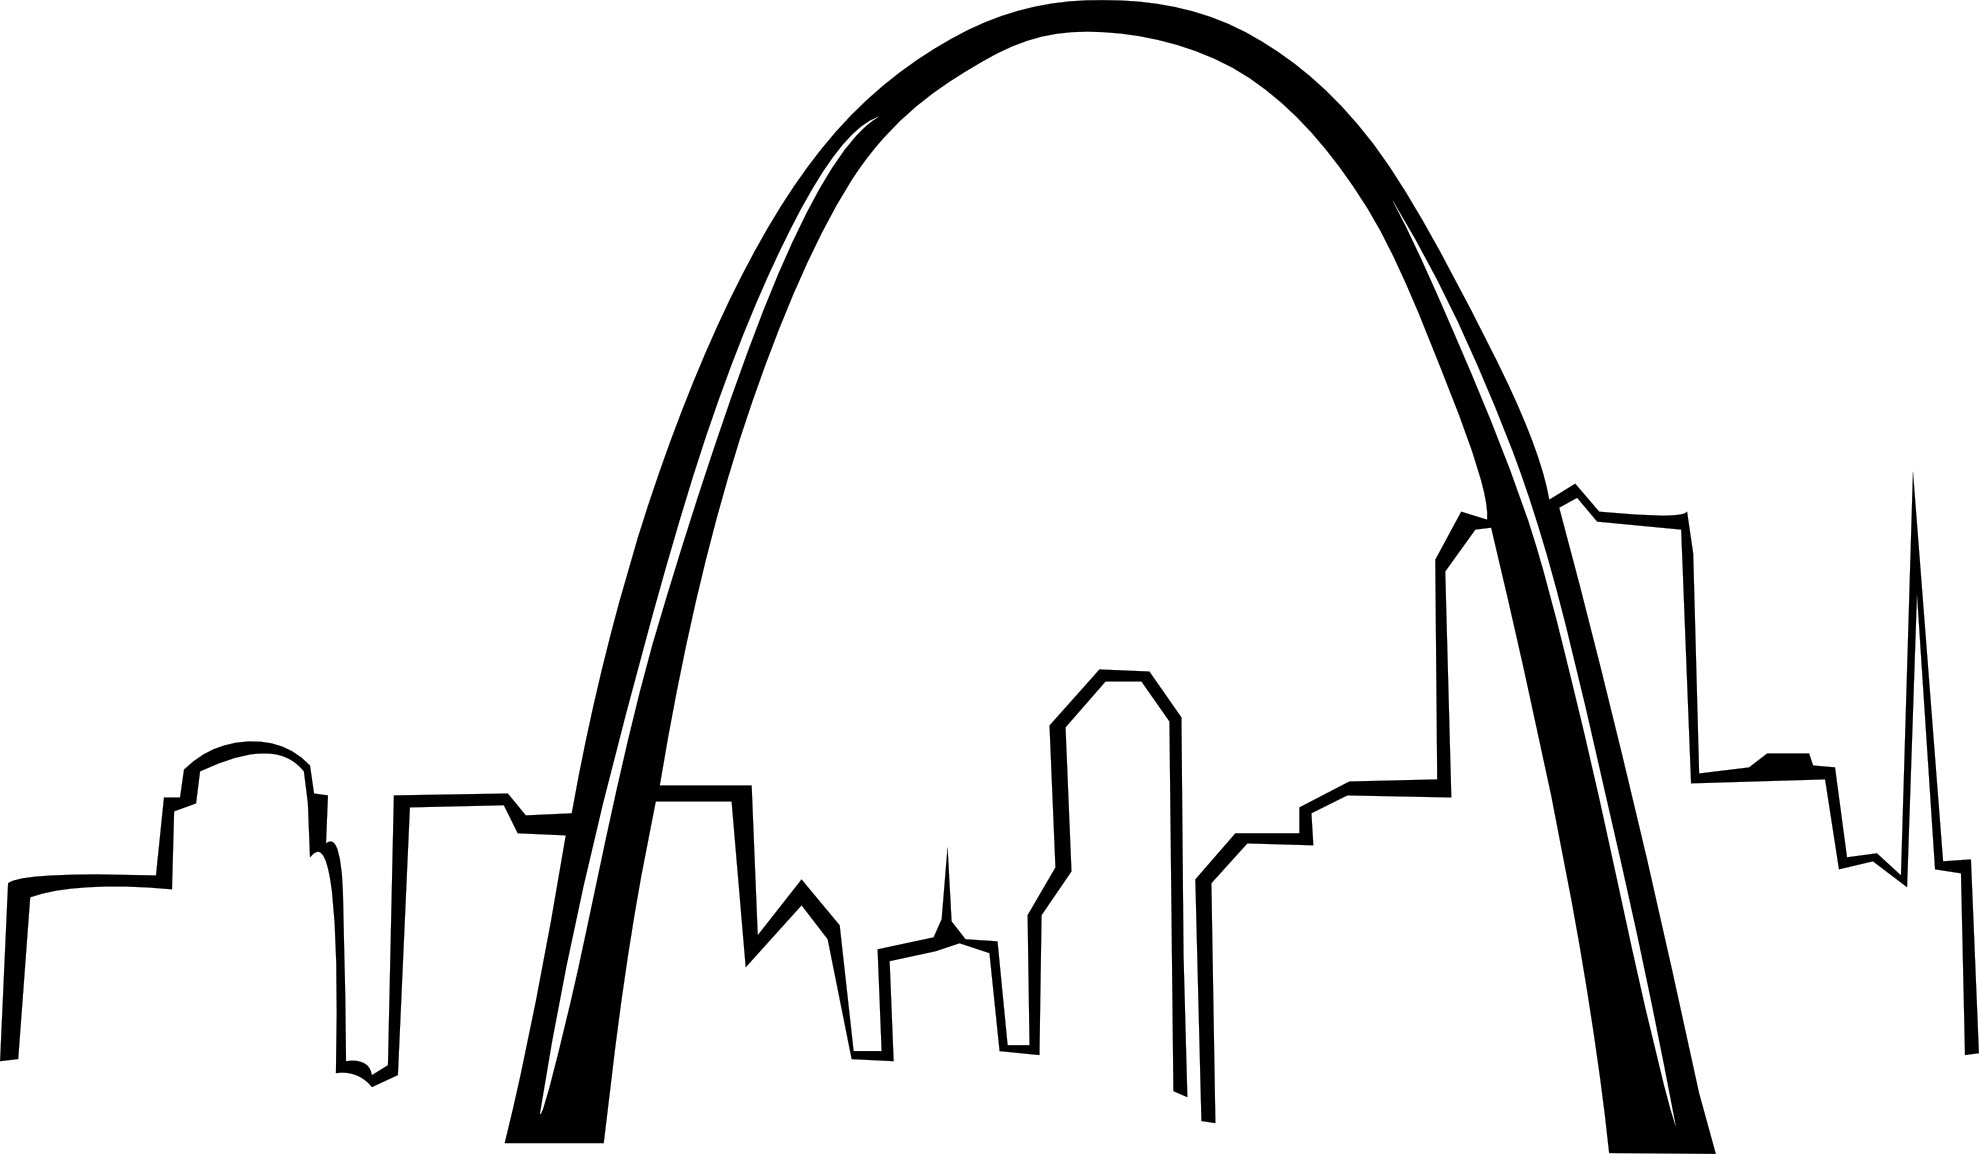 st_louis_gateway_arch_black_white_line_art_coloring_book_colouring-1979px copy.jpg